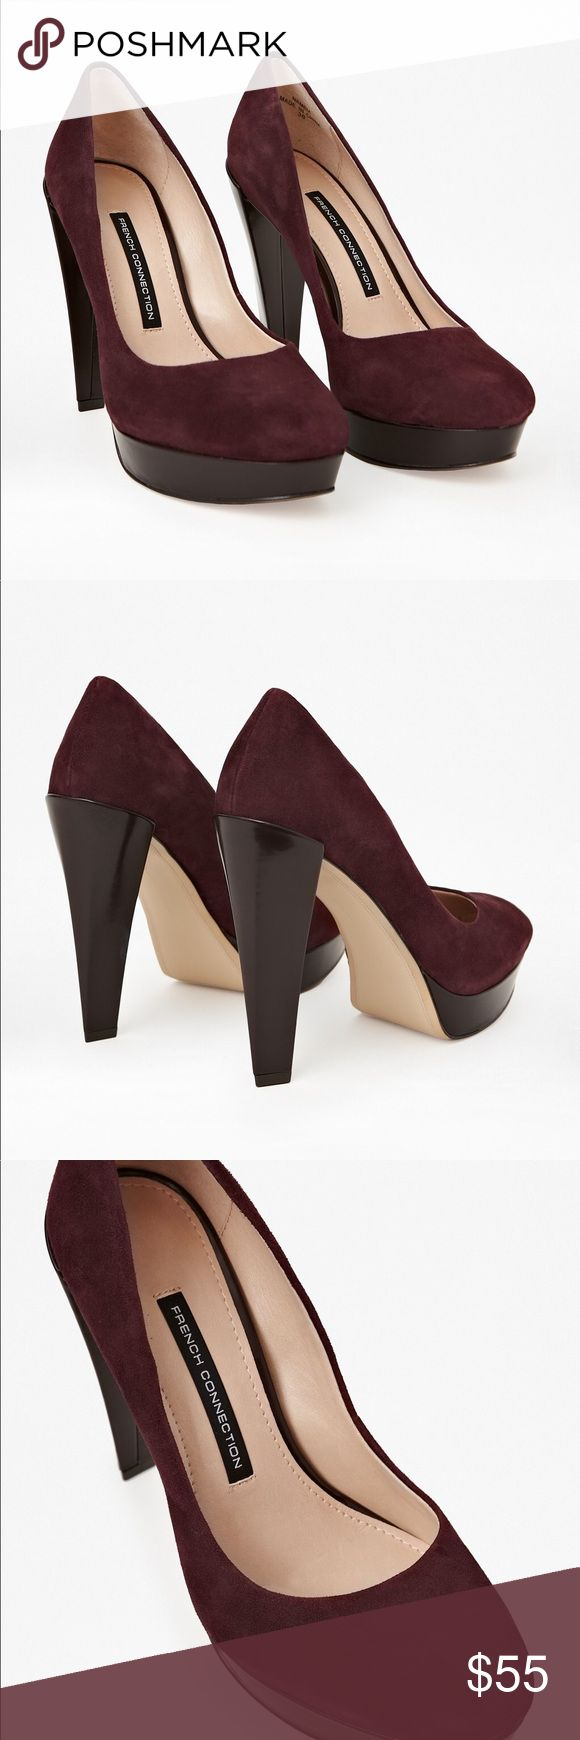 French Connection maroon suede pumps Great condition. Only been worn a couple of times. Size 37 French Connection Shoes Heels